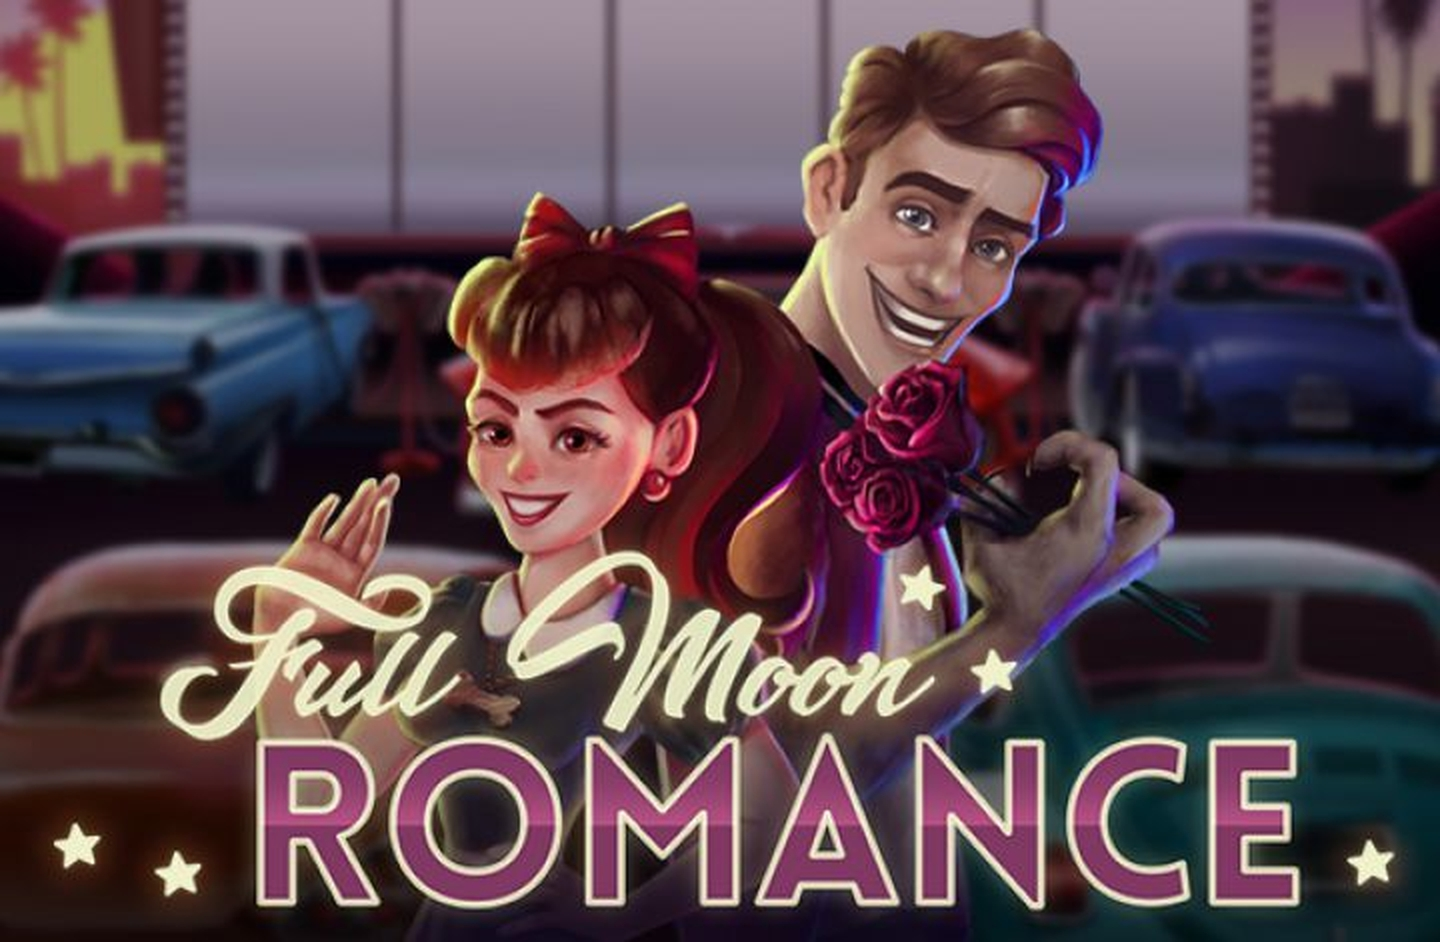 Full Moon Romance Online Slot Demo Game by Thunderkick